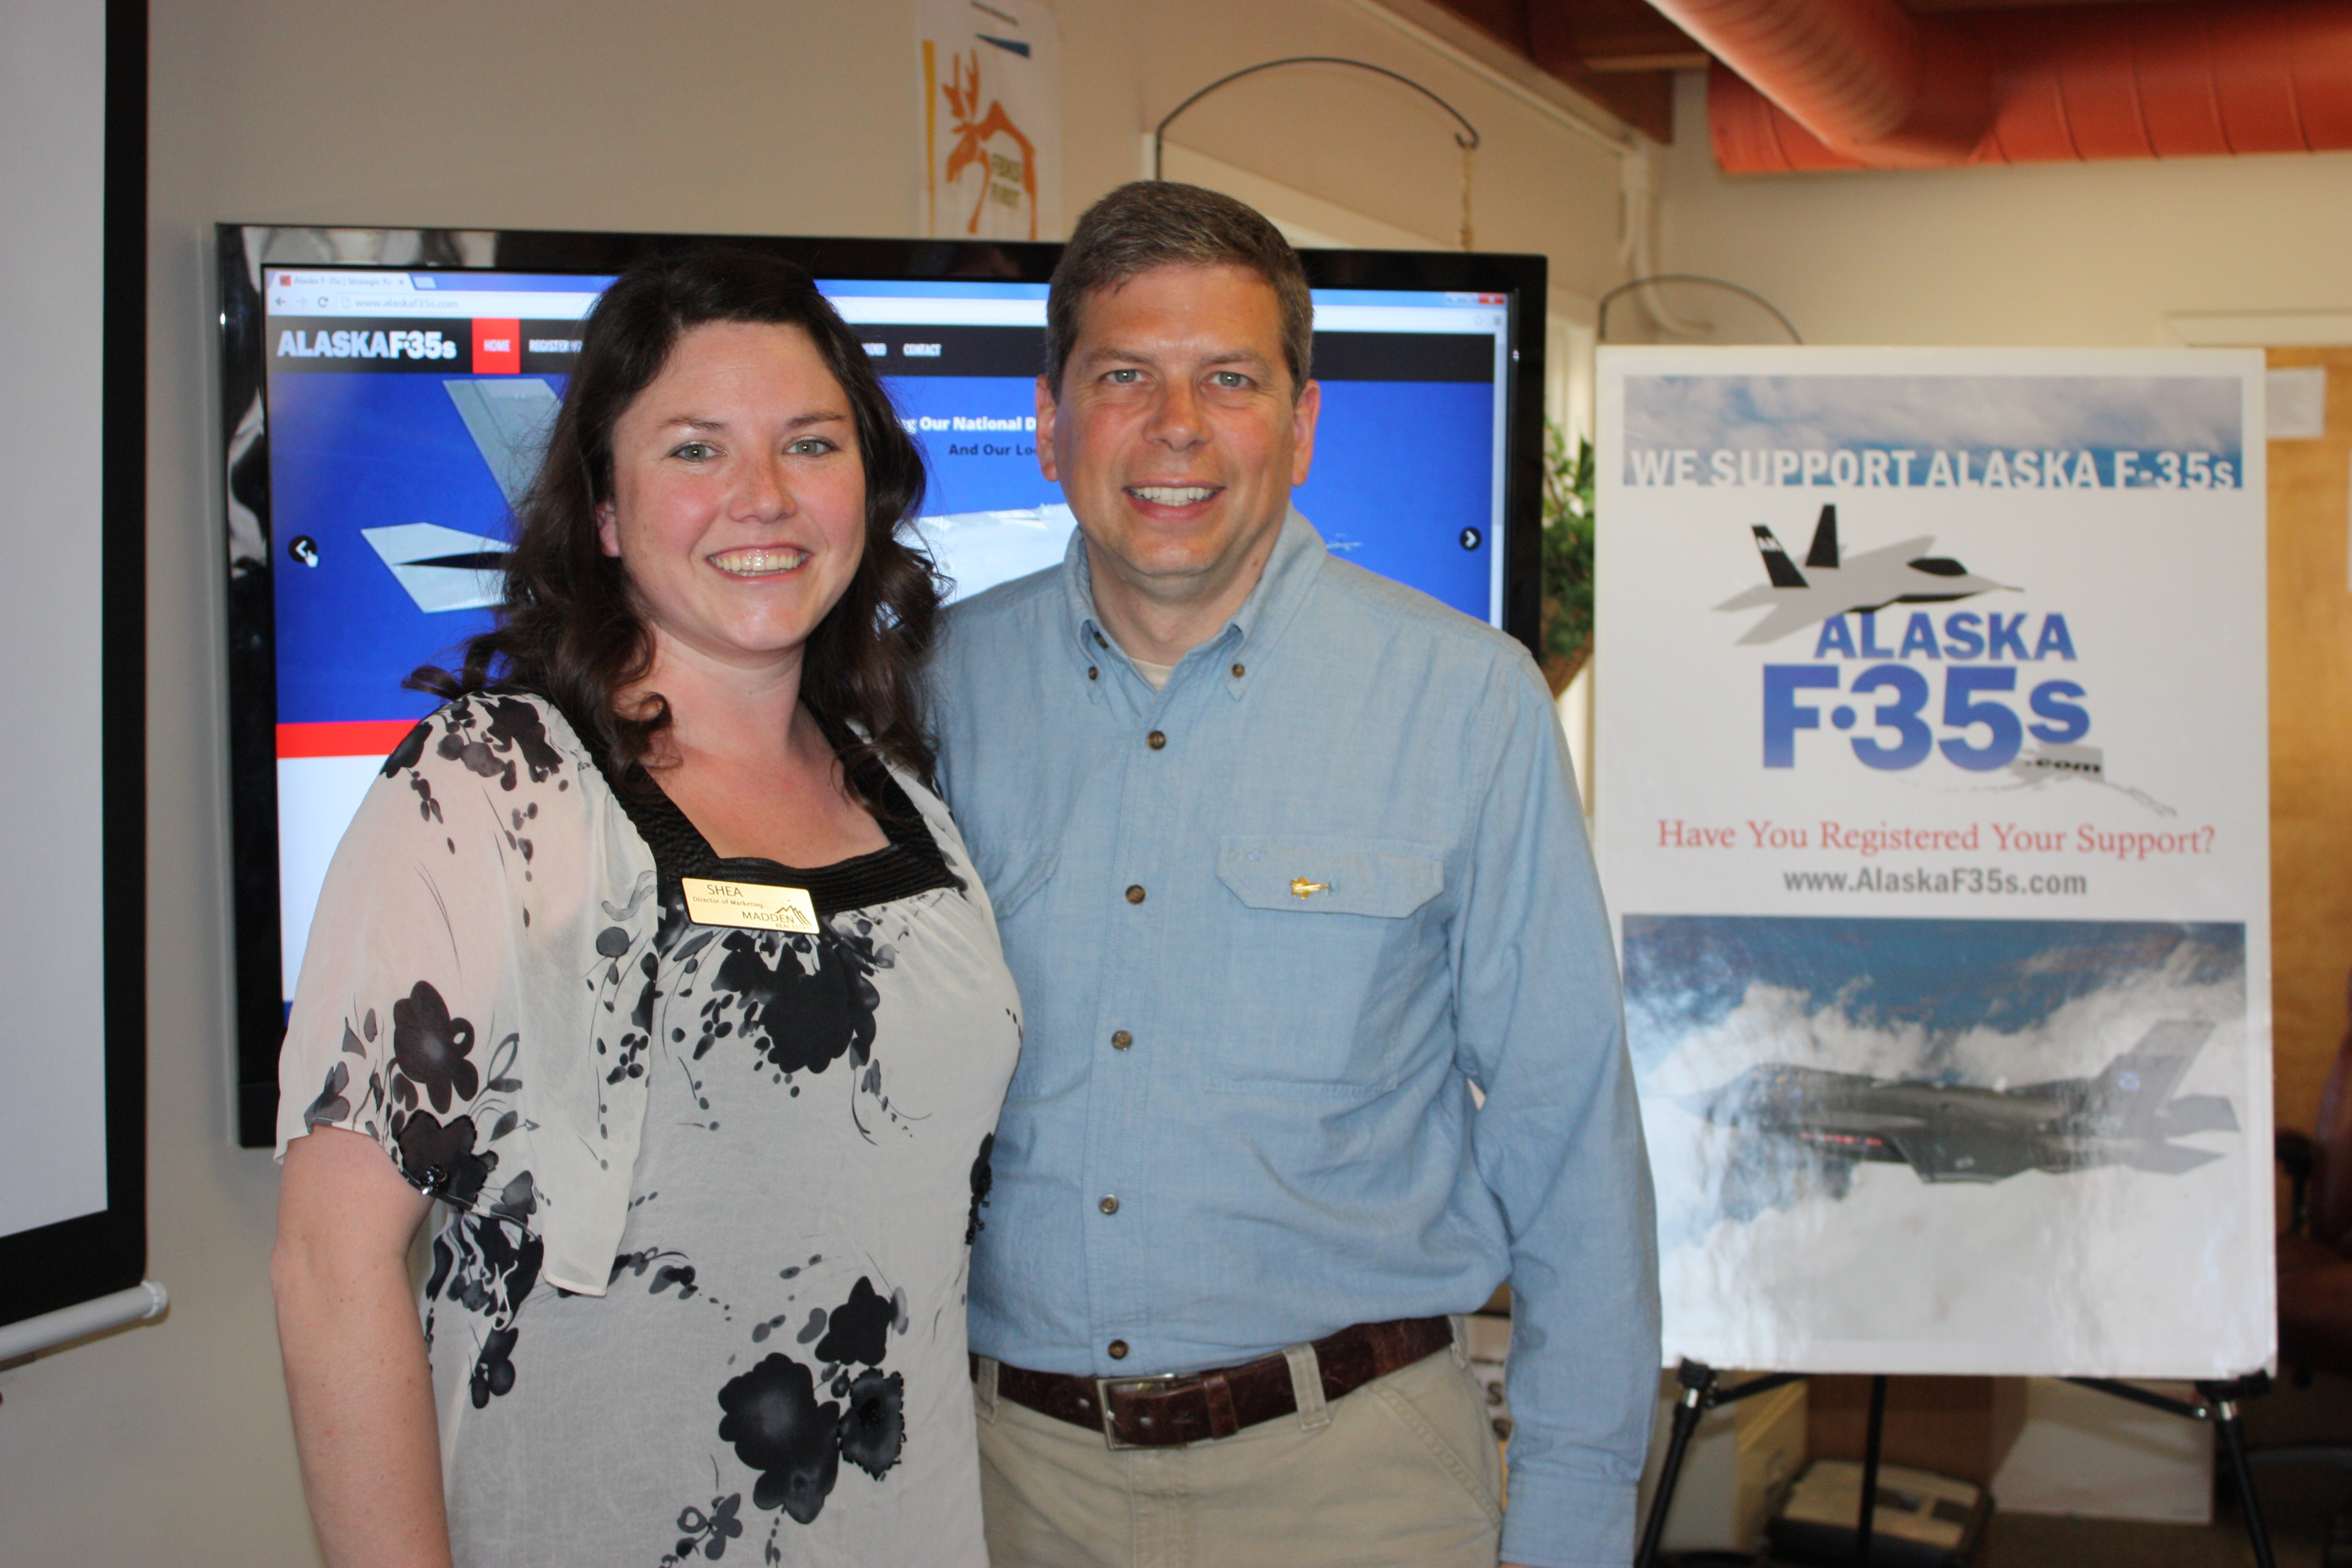 Shea Bedlie and Senator Begich